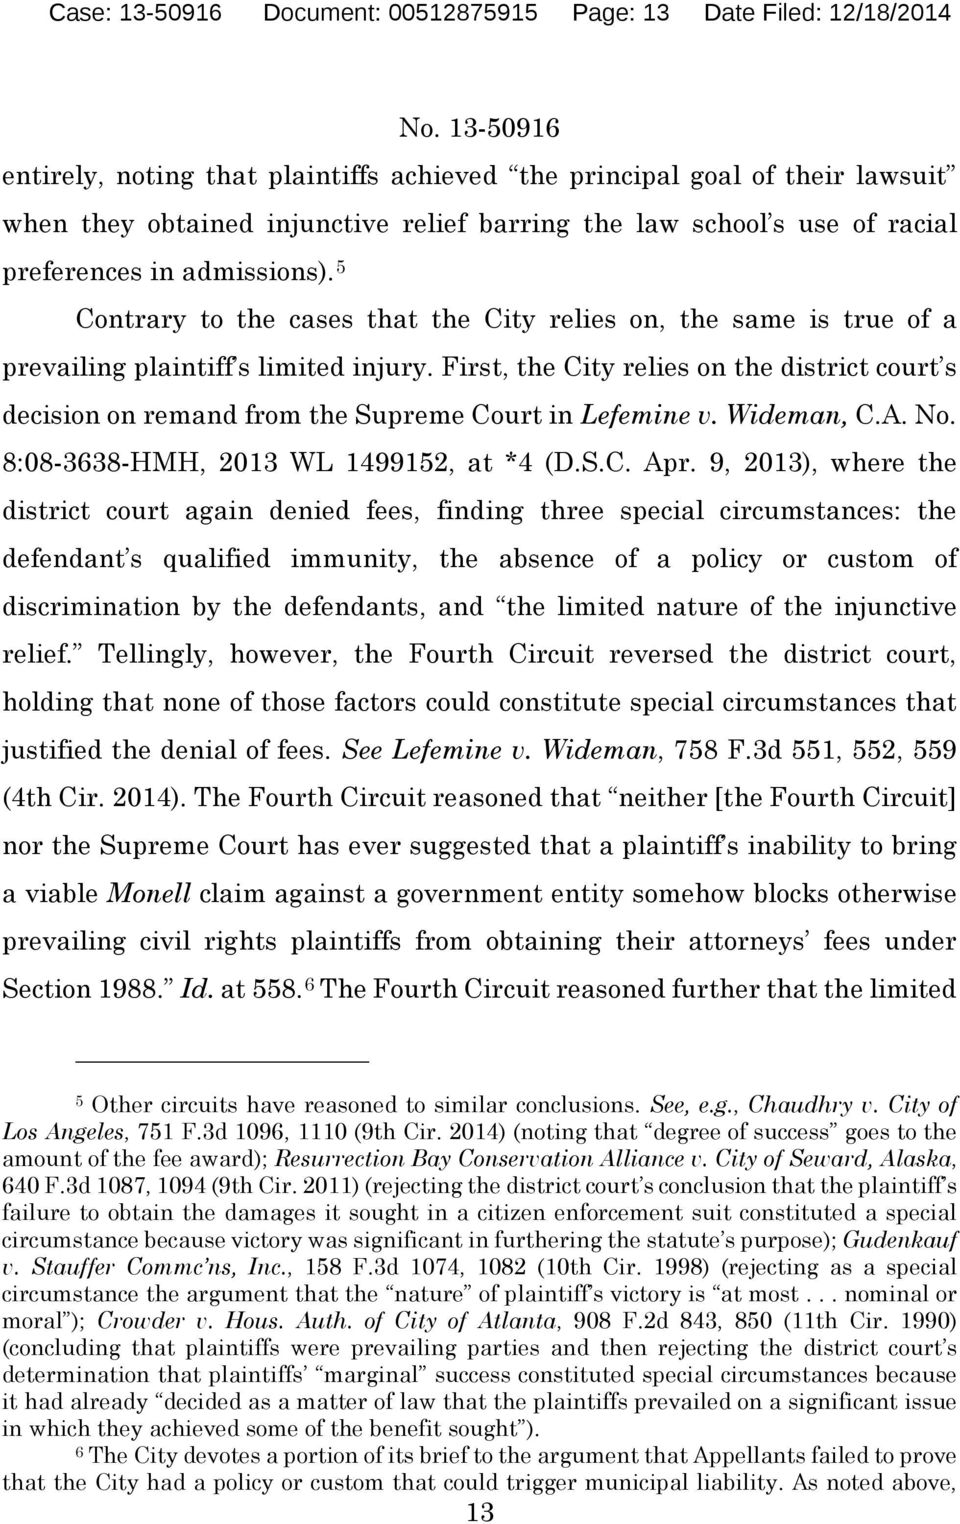 First, the City relies on the district court s decision on remand from the Supreme Court in Lefemine v. Wideman, C.A. No. 8:08-3638-HMH, 2013 WL 1499152, at *4 (D.S.C. Apr.